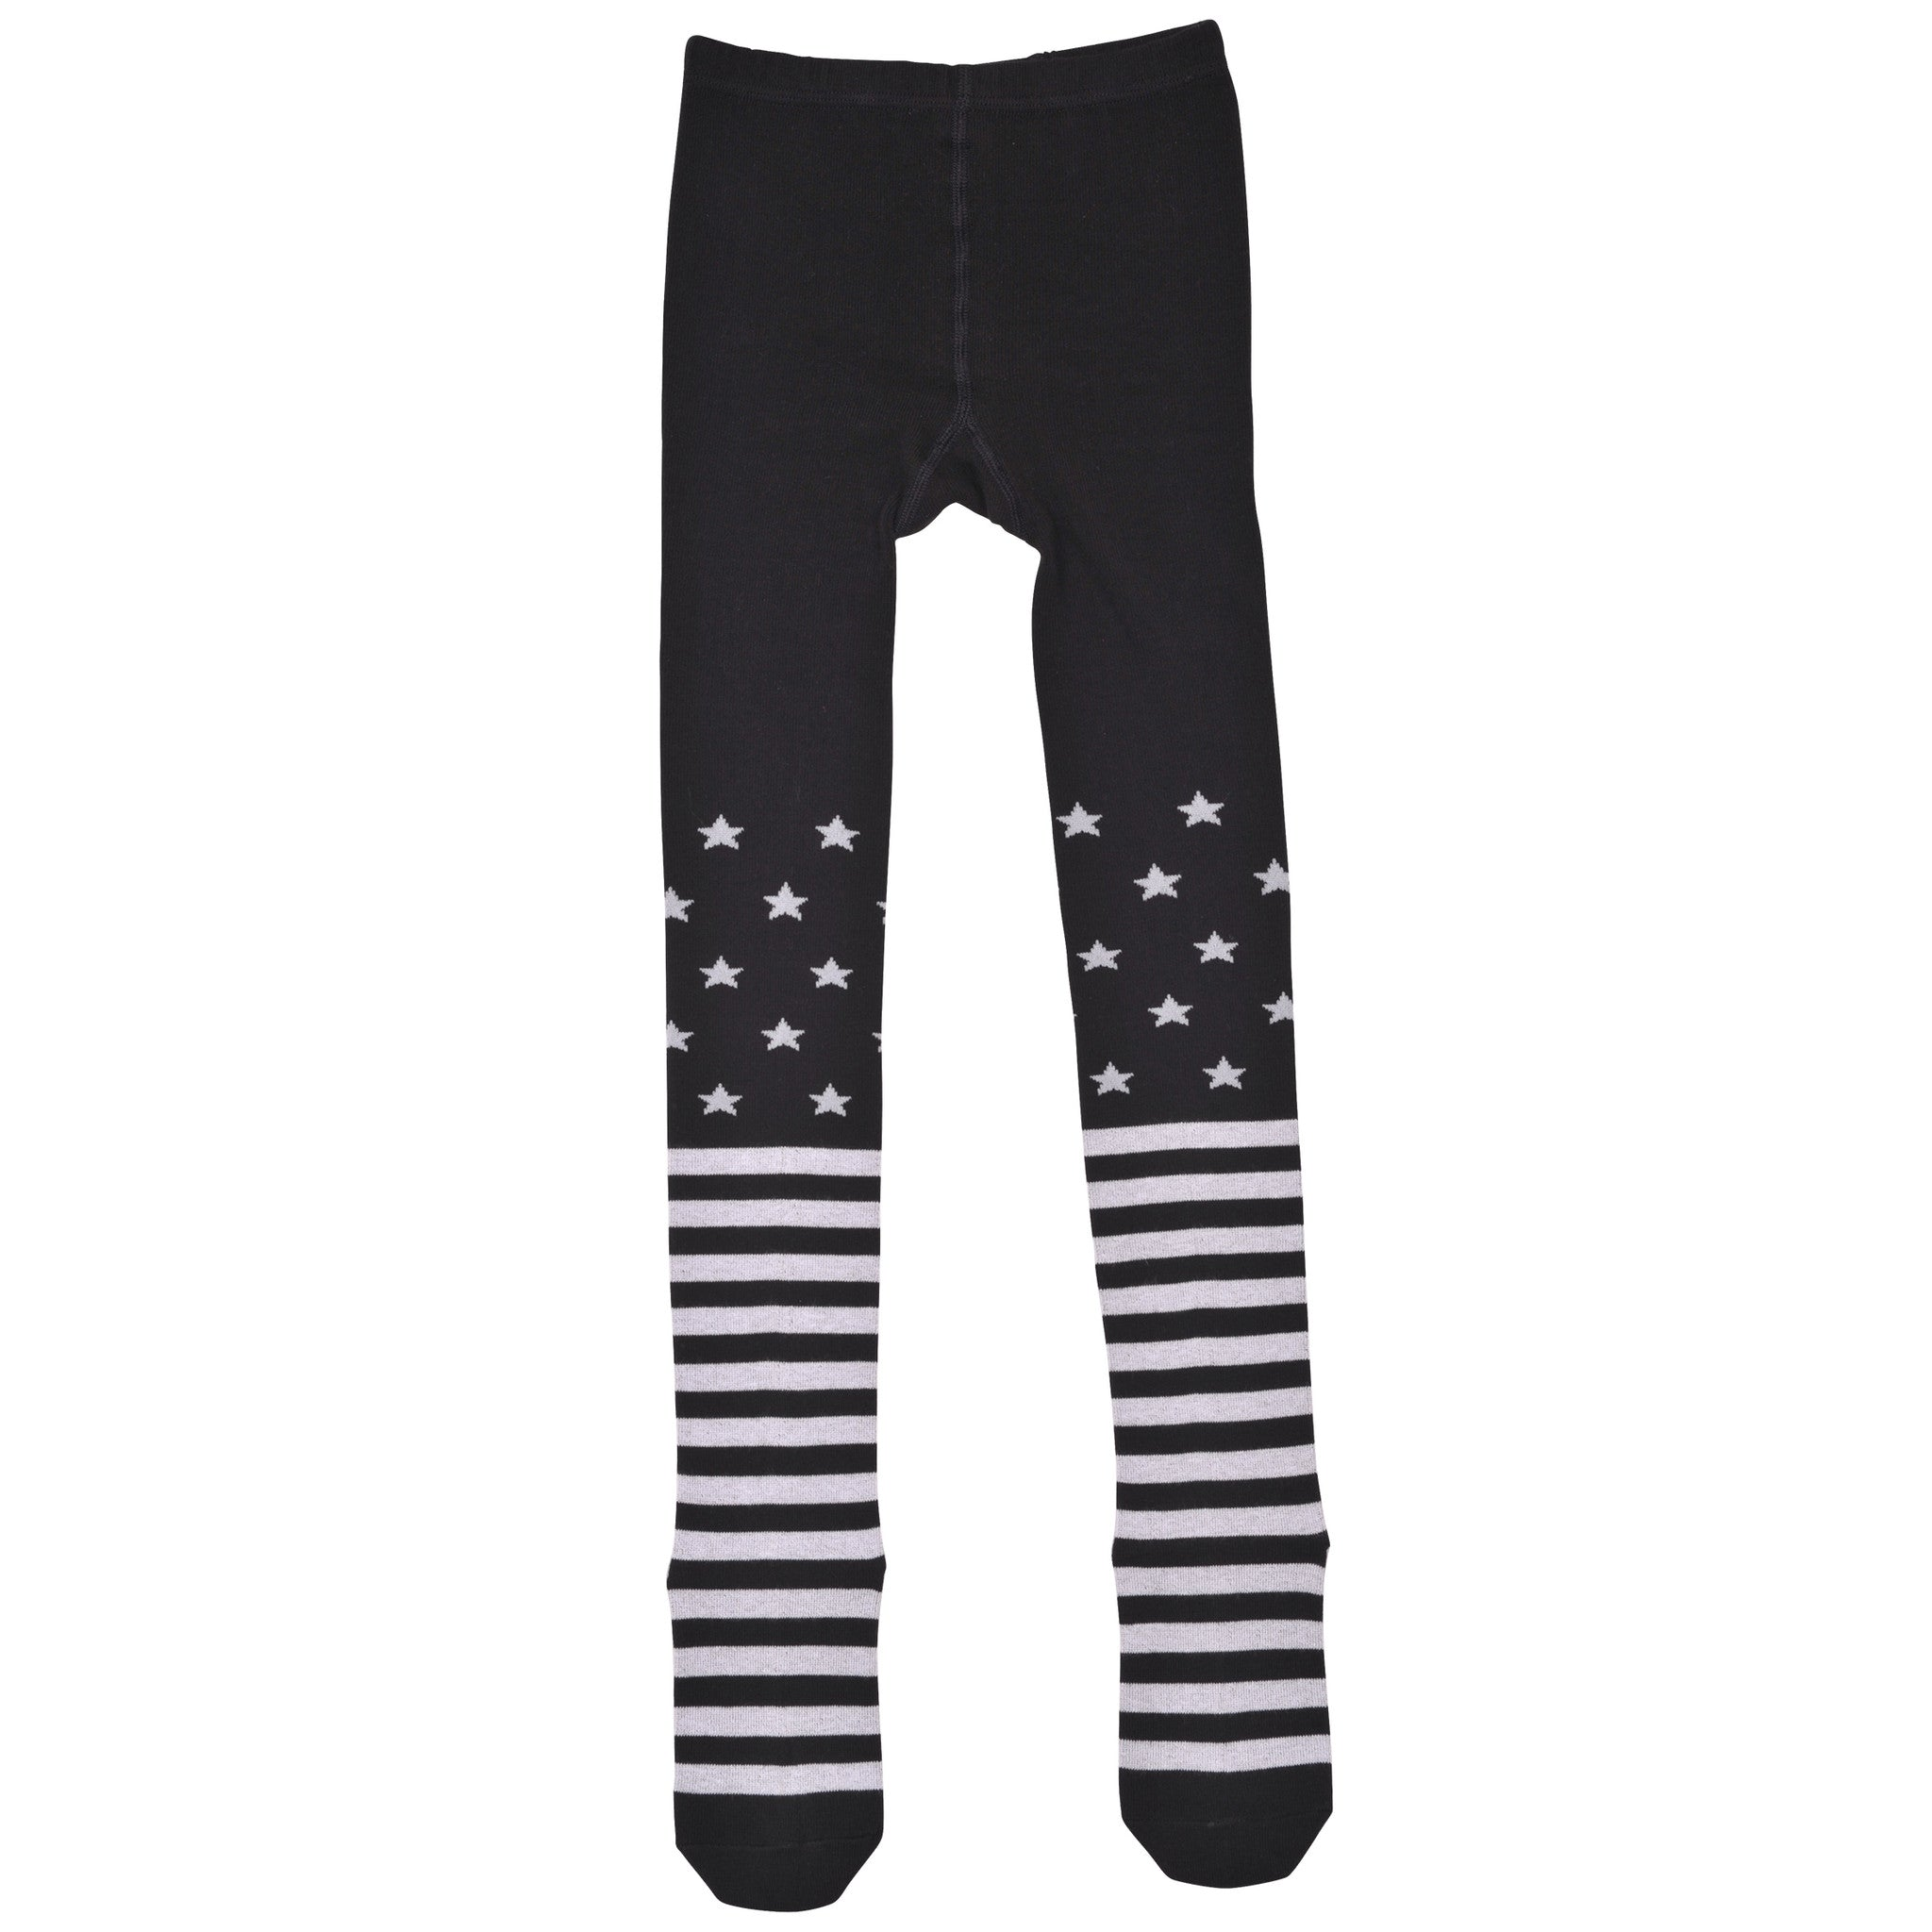 Paper Wings Tights Black/White Stars and Stripes